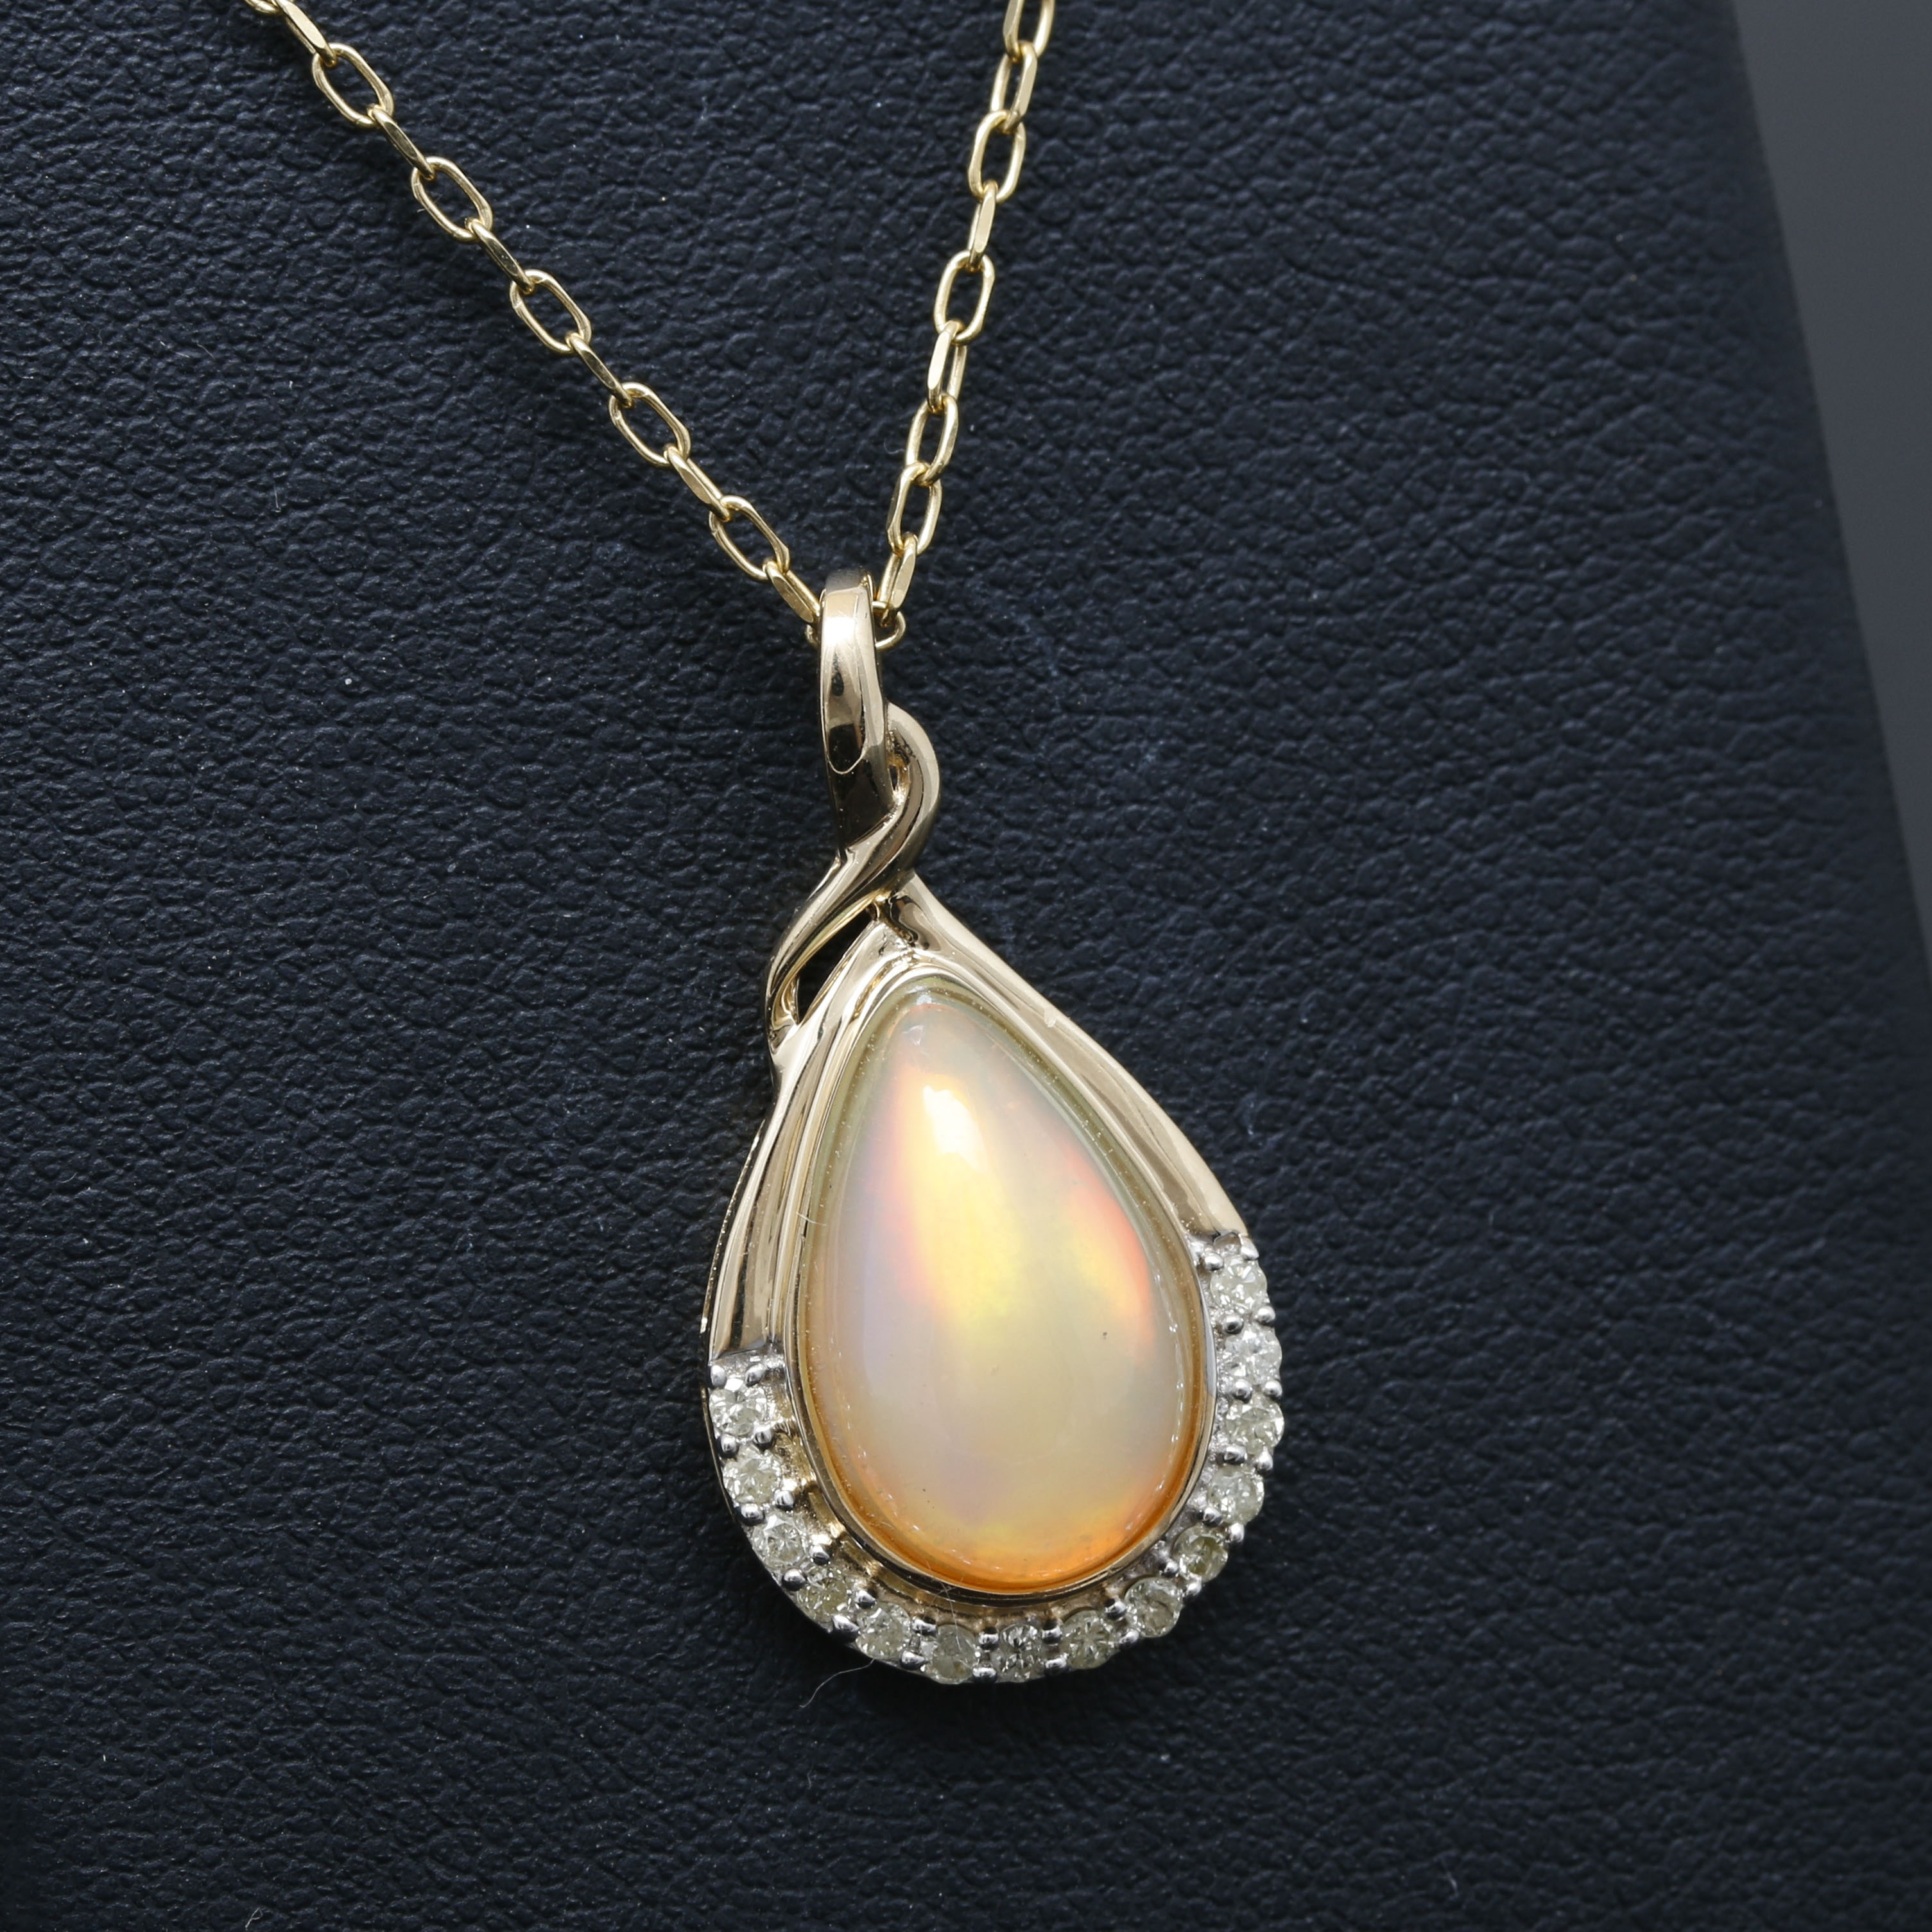 14K Yellow Gold Opal and Diamond Necklace